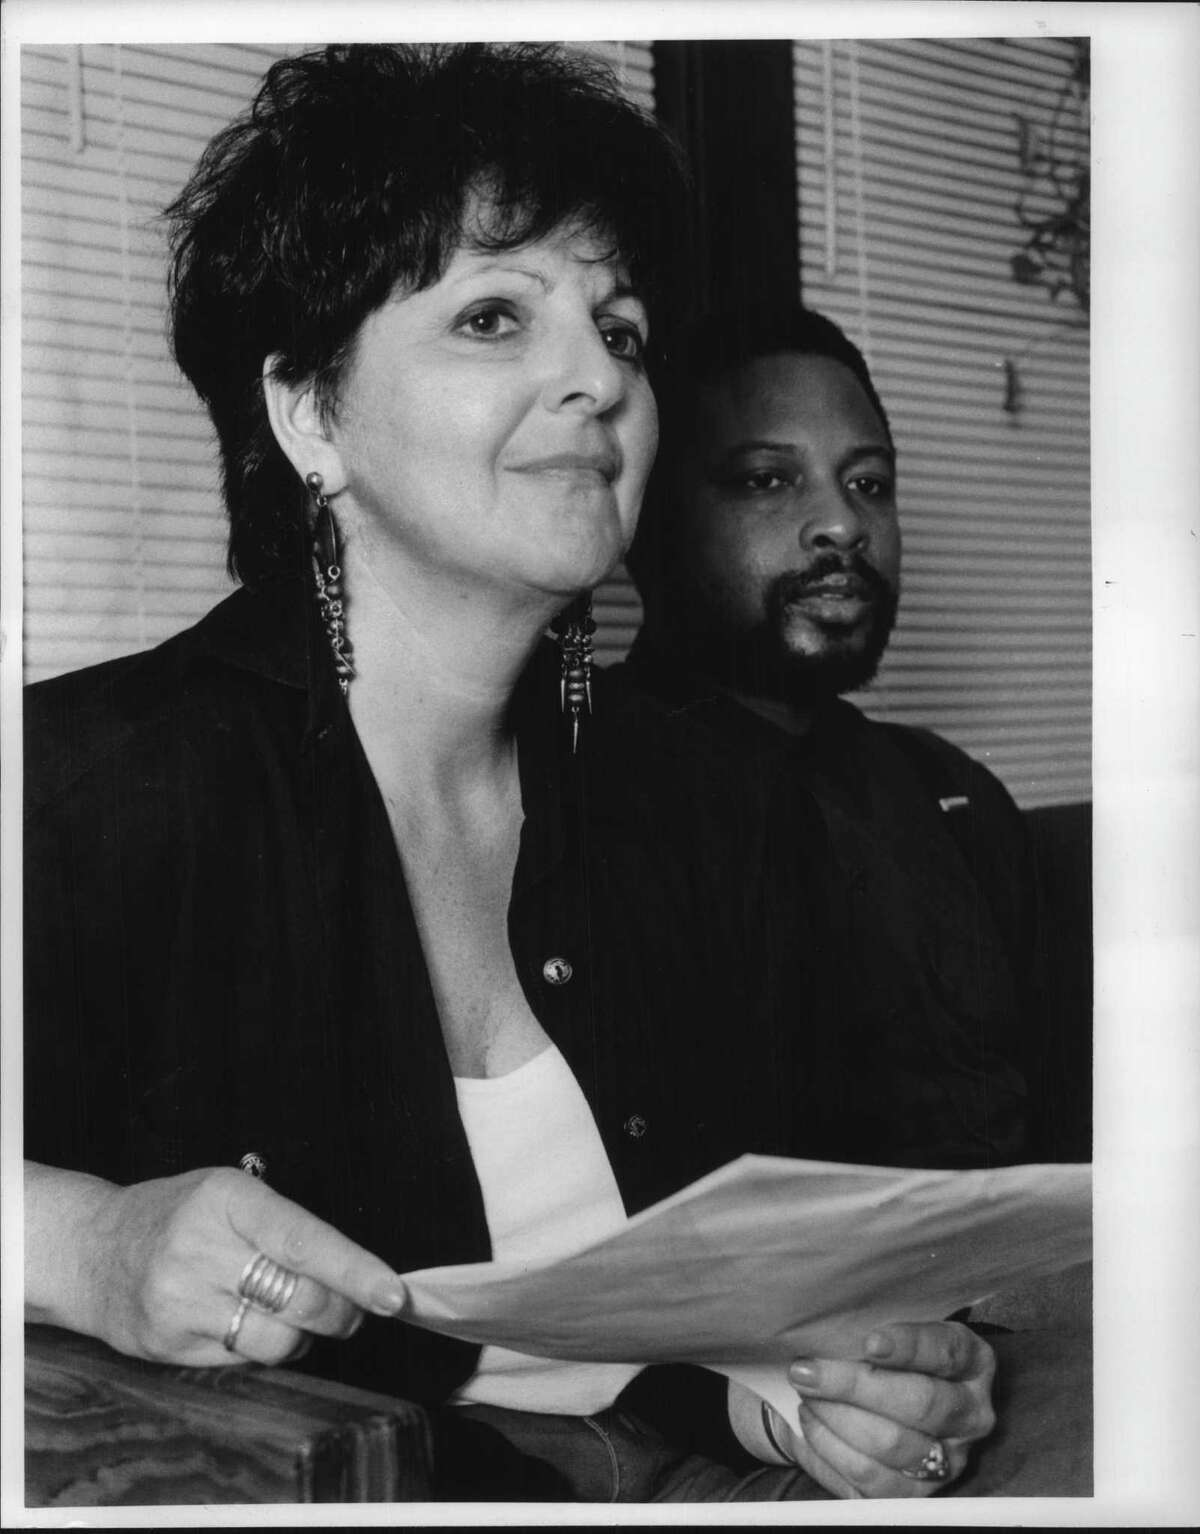 Albany, New York - Vera Michelson and Merton Simpson, Co-Chairs of the Capital District Coalition Against Racism and Apartheid, fighting for freedom here and in South Africa. September 15, 1991 (Luanne M. Ferris/Times Union Archive)